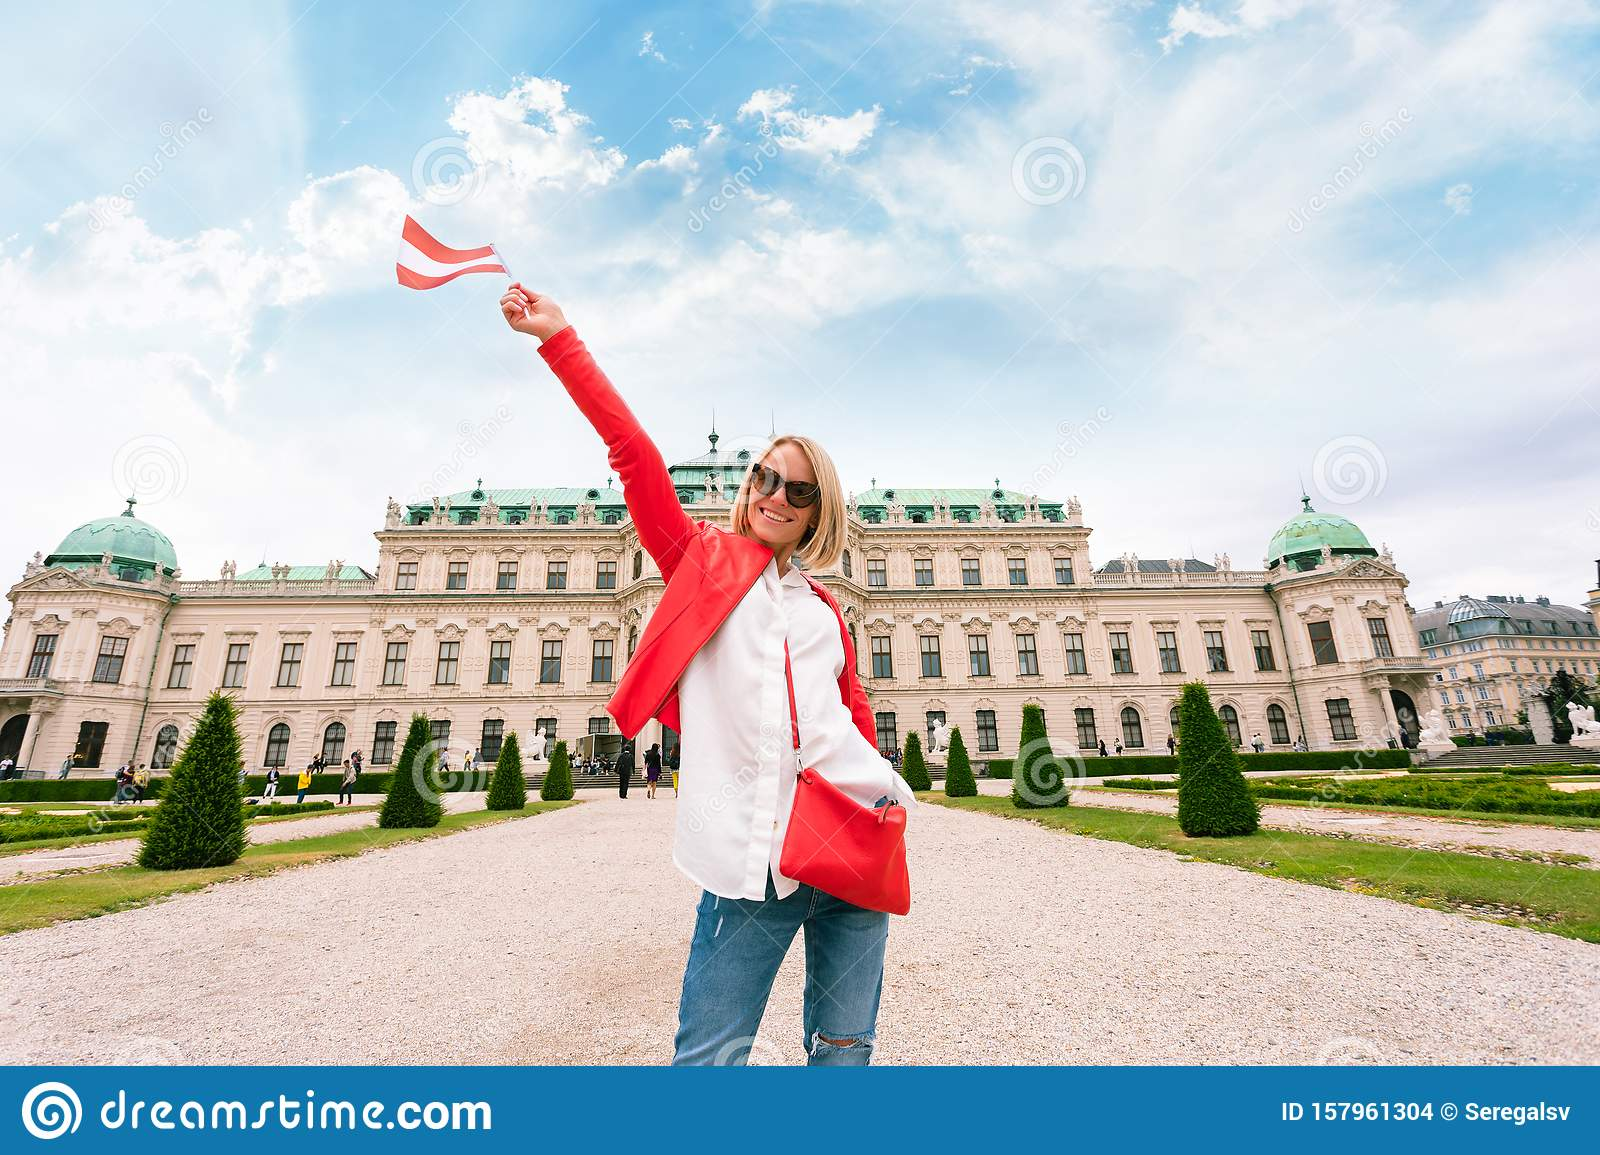 Female traveler with the flag of Austria against the backdrop of the Upper Belvedere Palace in Vienna.